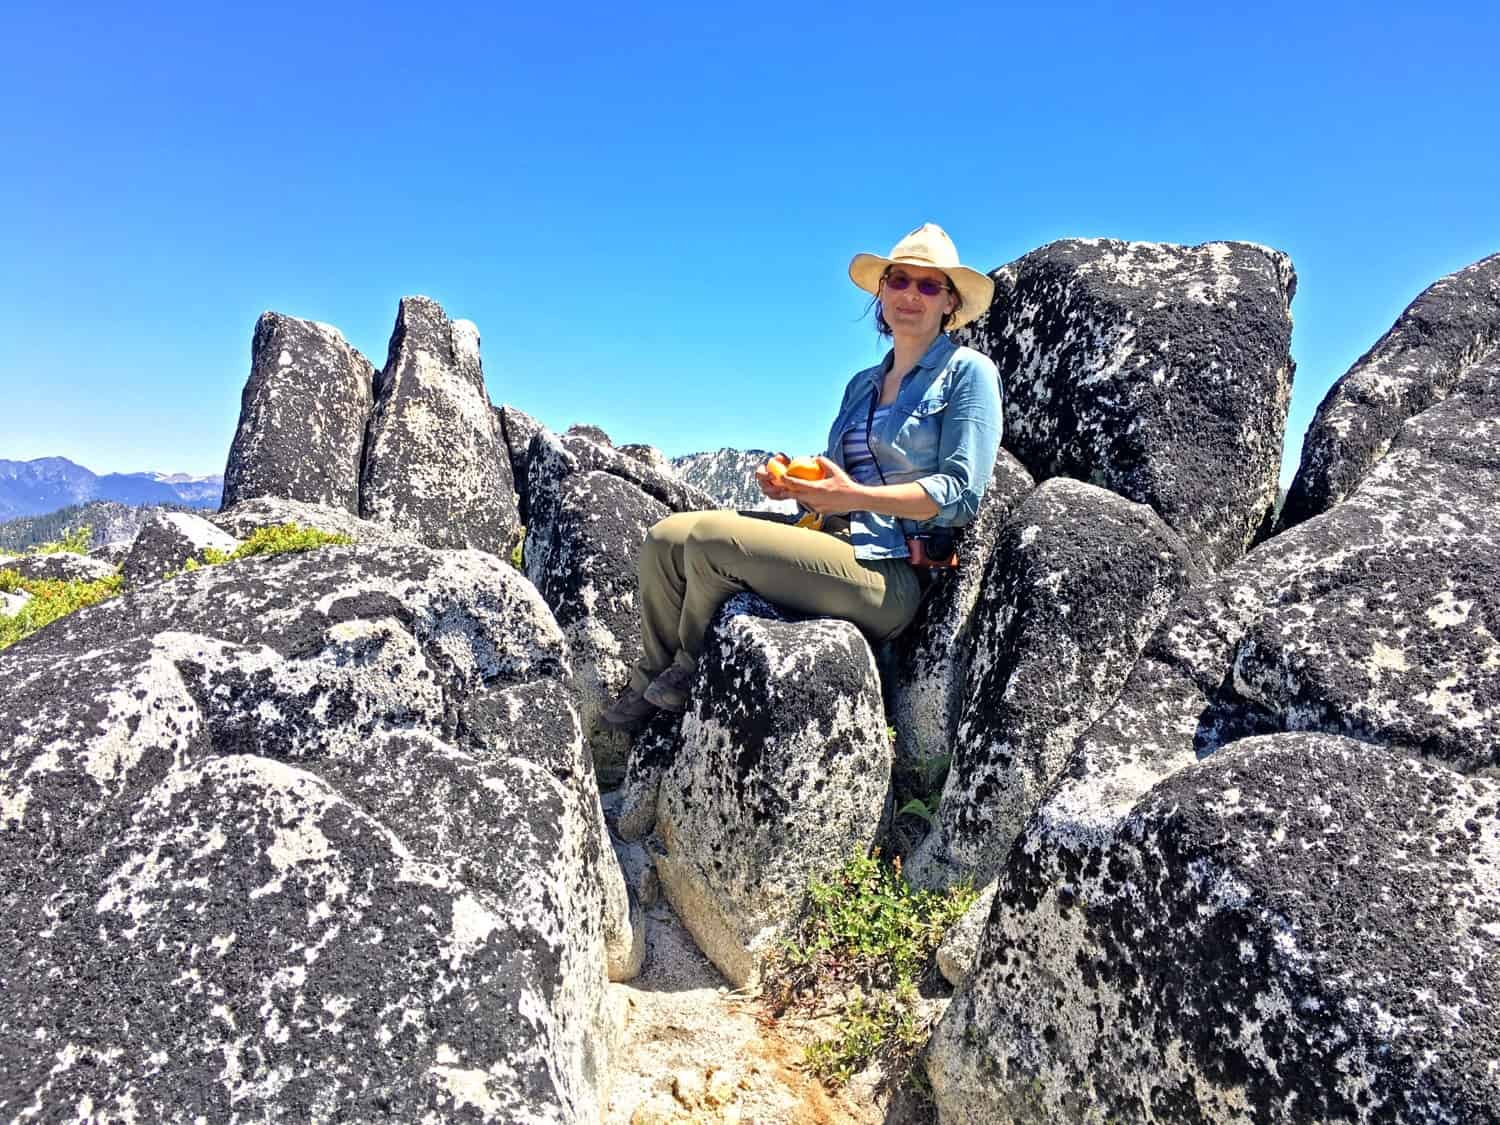 Karuna sitting on a rock outcropping, overlooking the Duck Lakes in the 'Miracle Mile' of the Russian Wilderness